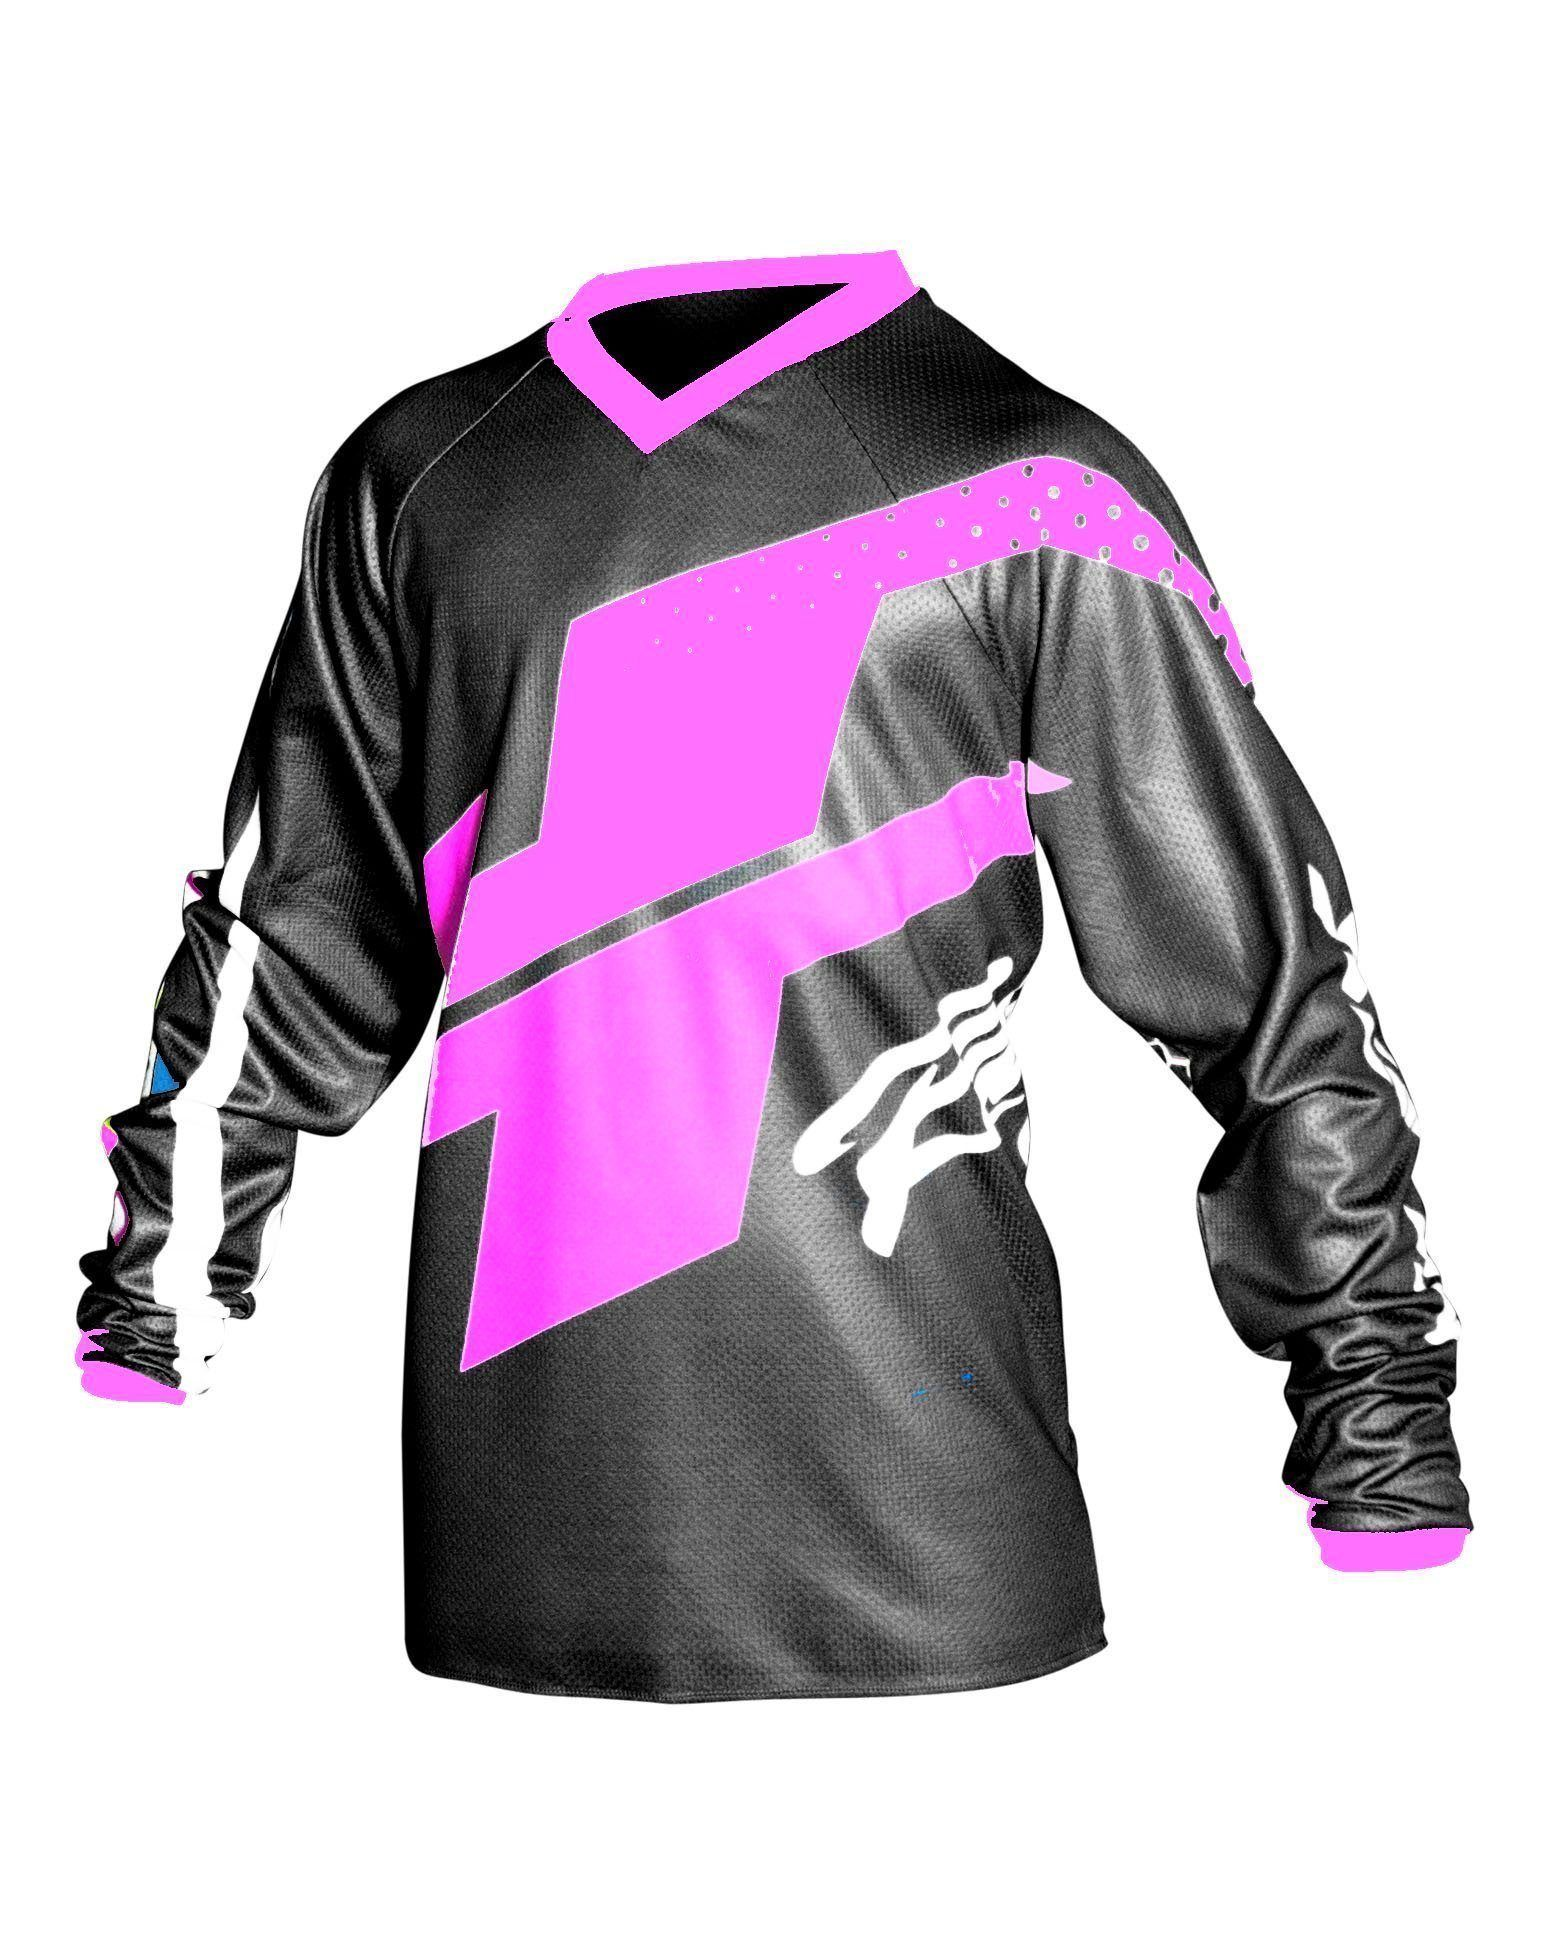 Youth Flex Hi-Flo Black/Pink Jersey